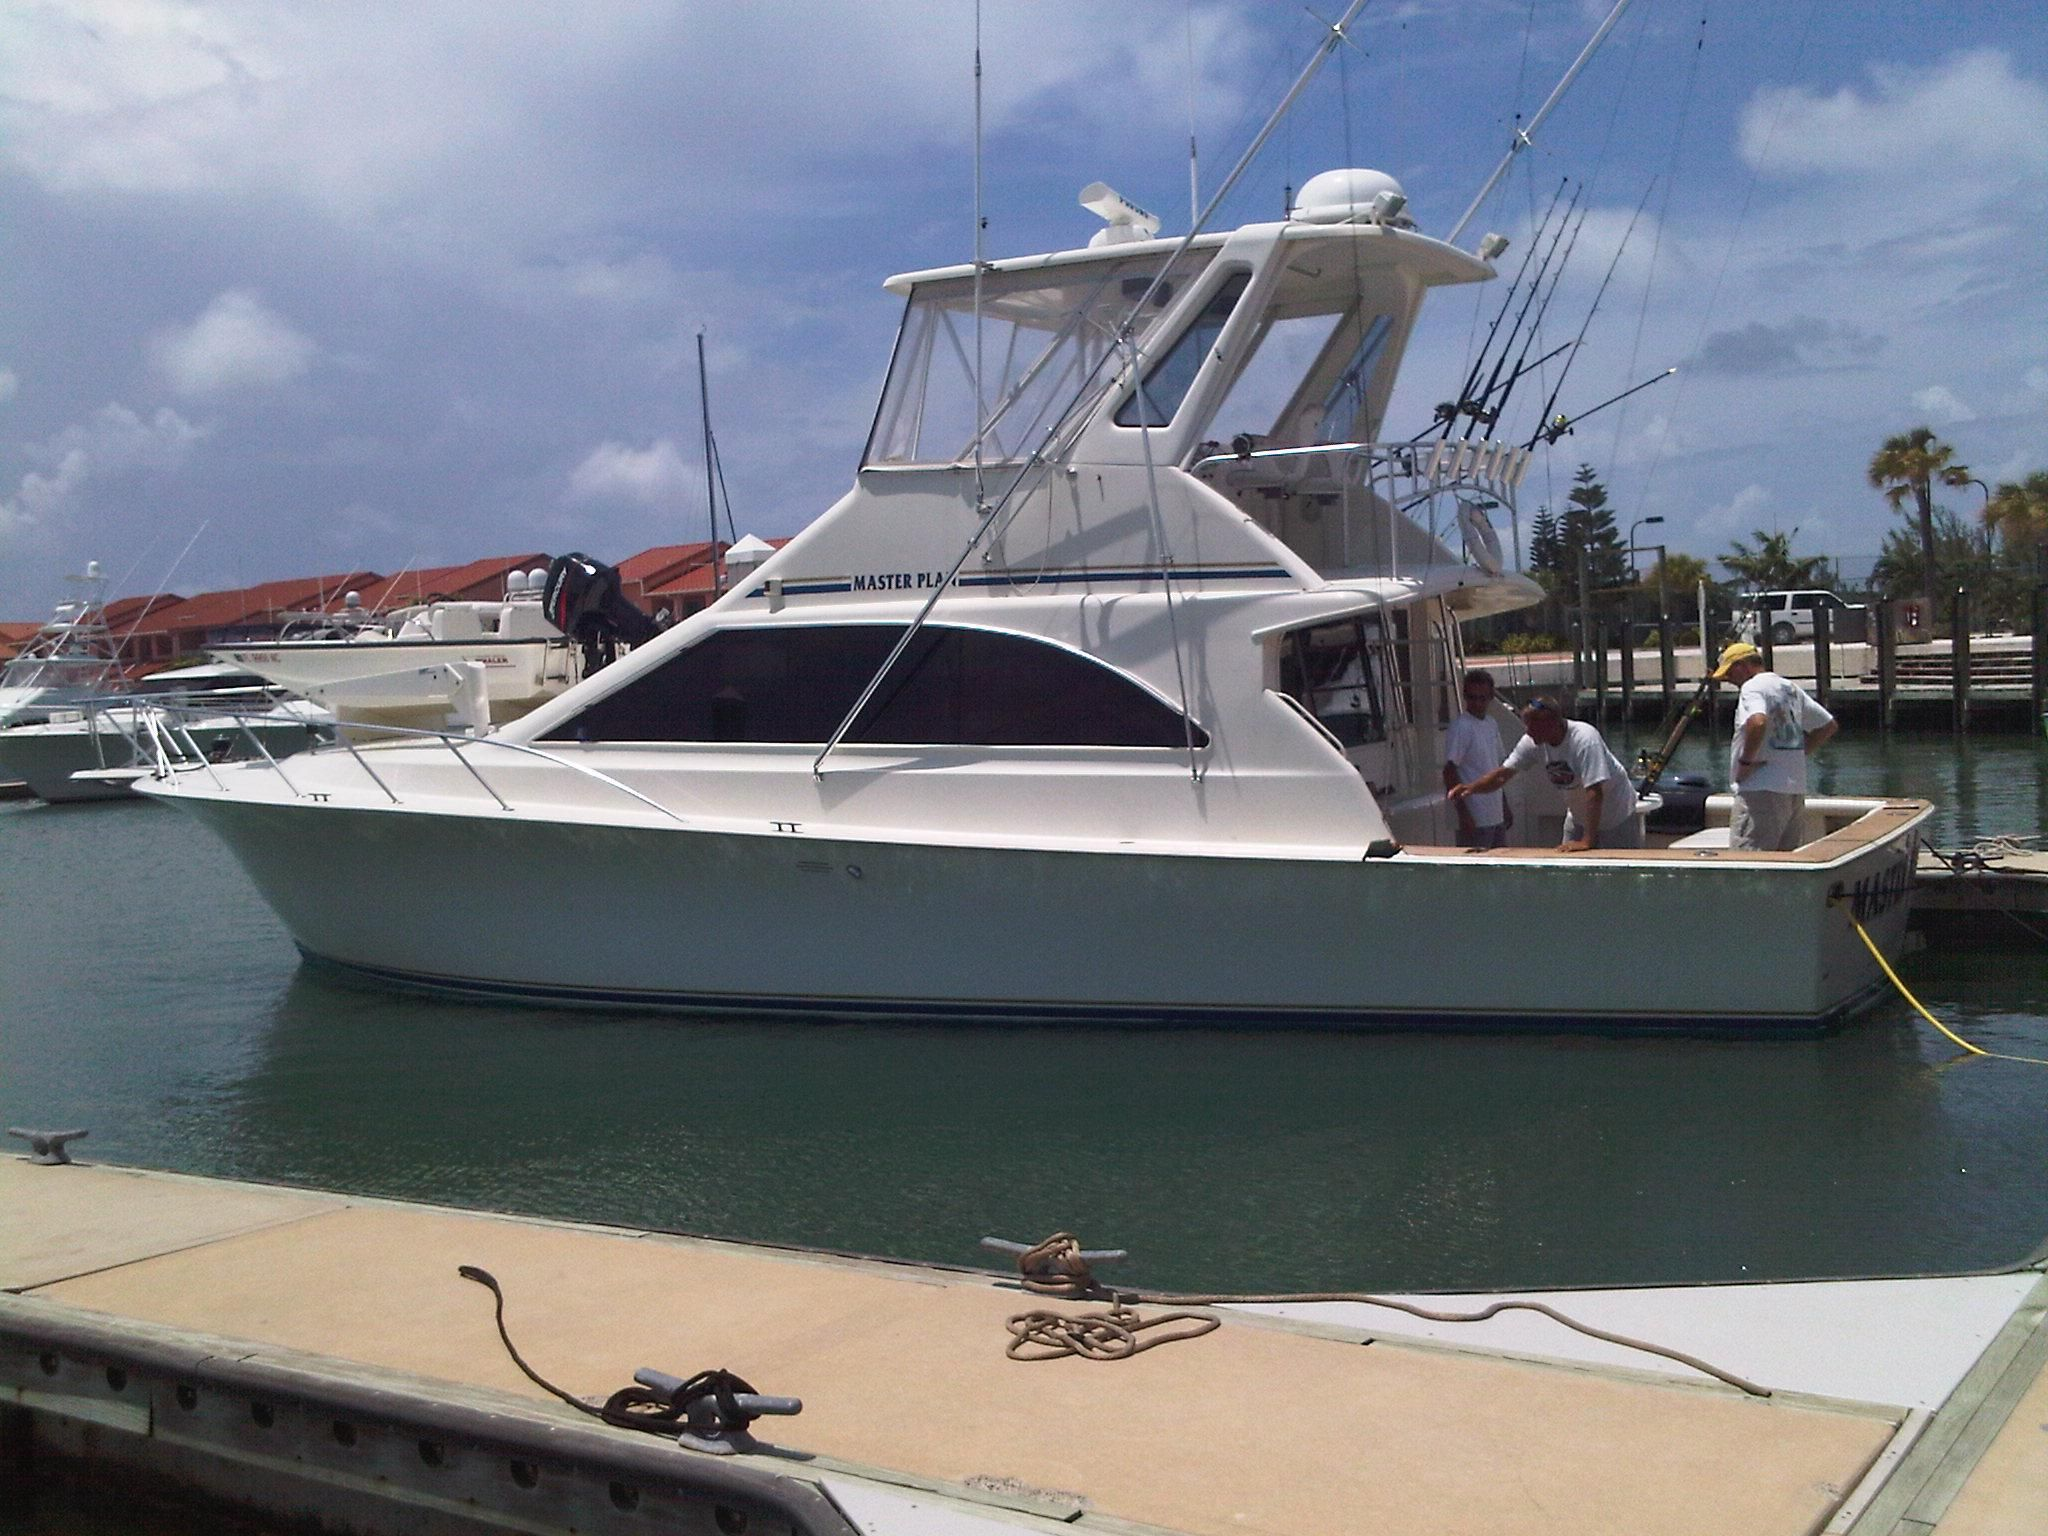 1997 ocean yachts 48 super sport power boat for sale www for Ocean yachts 48 motor yacht for sale